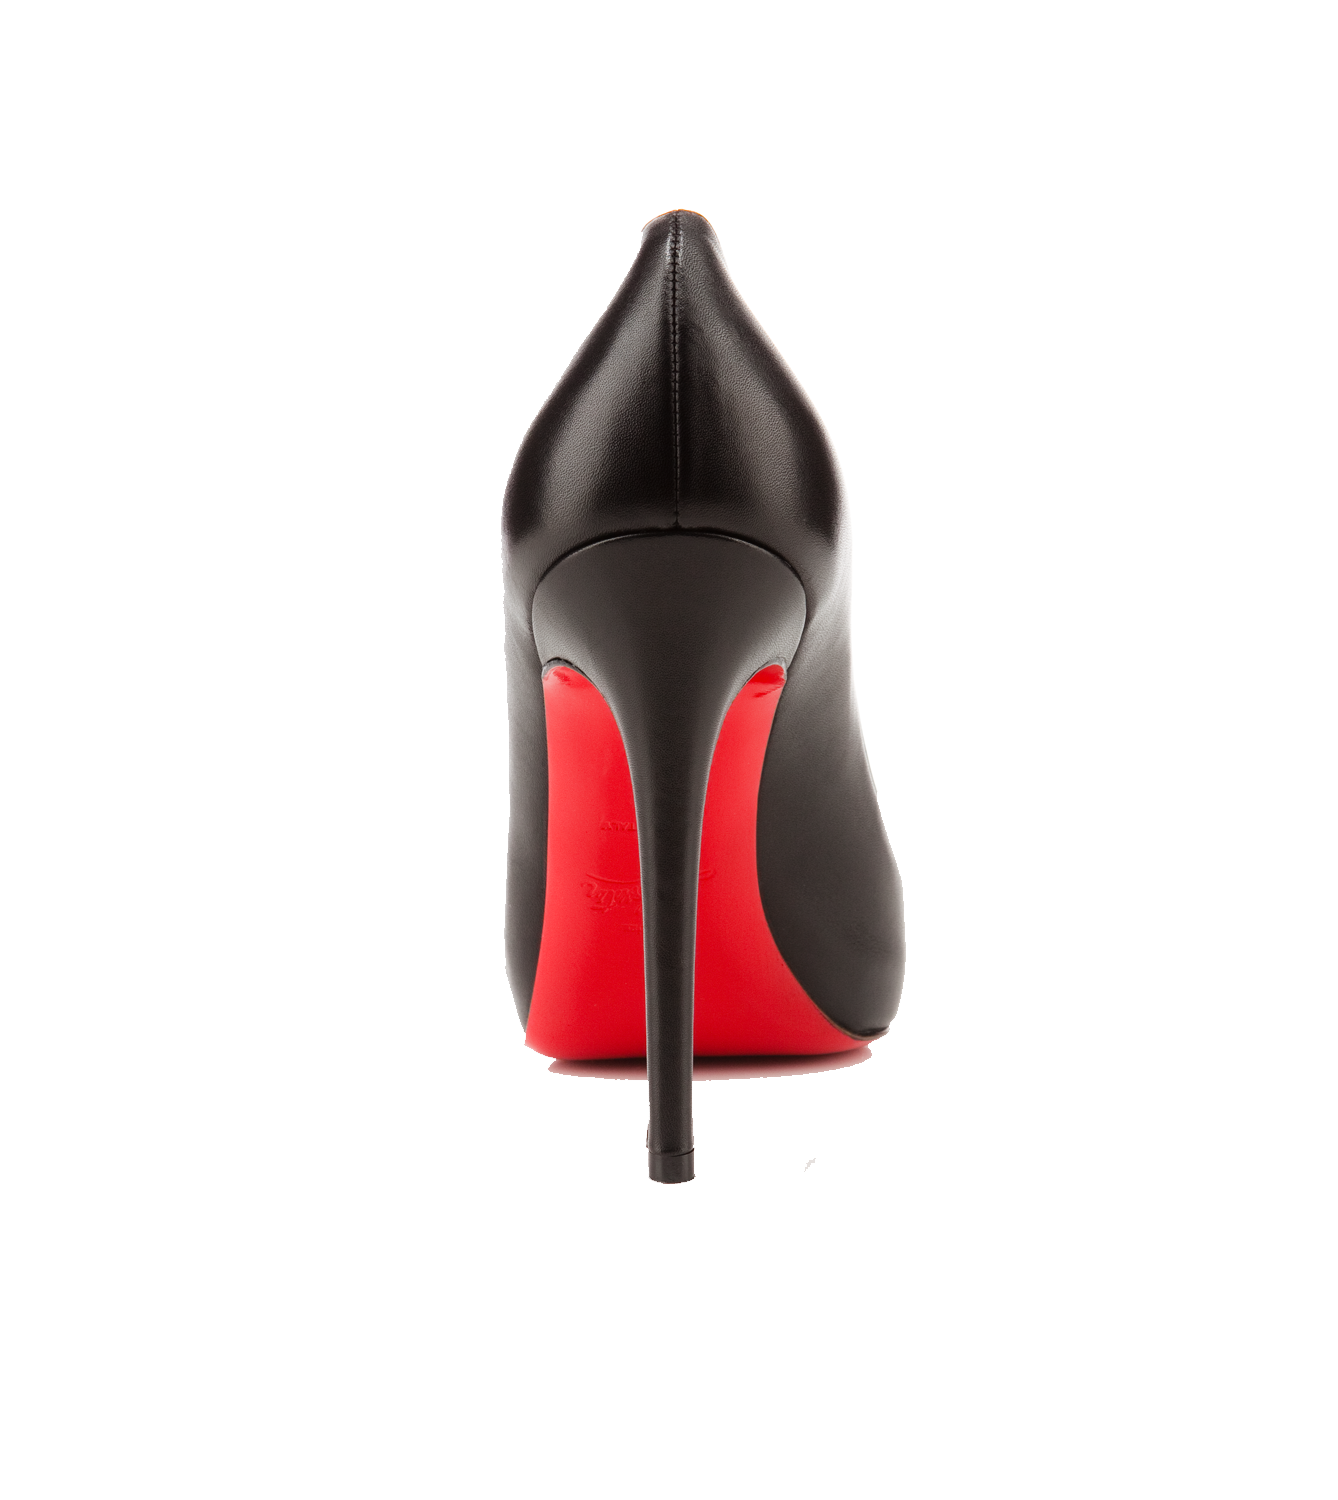 Christian Louboutin Heels Image PNG Image